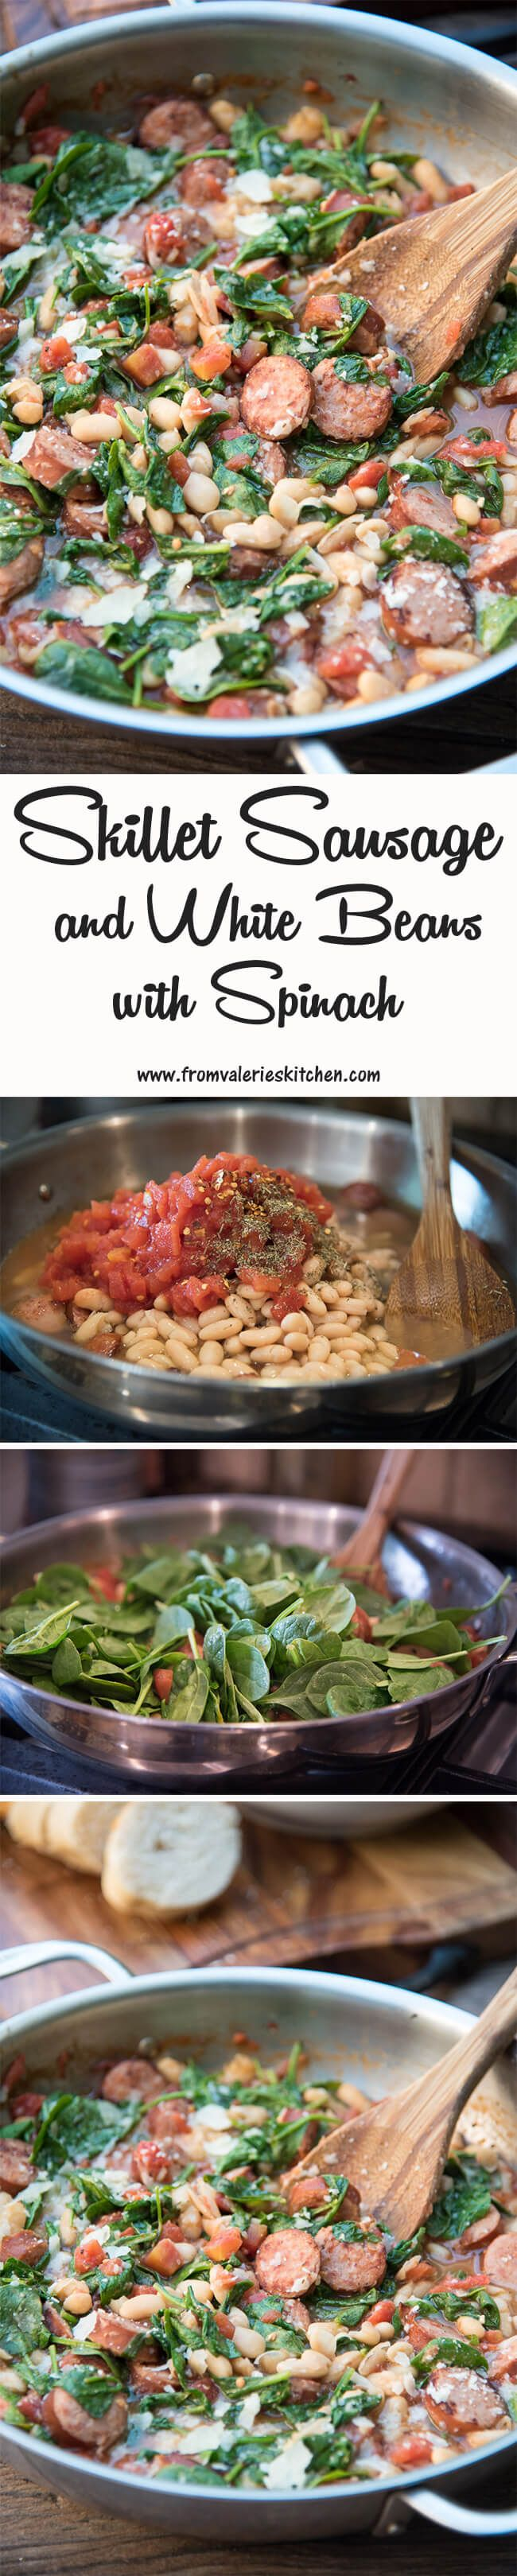 Hearty, comforting, and ready in 30 minutes! ~ https://www.fromvalerieskitchen.com